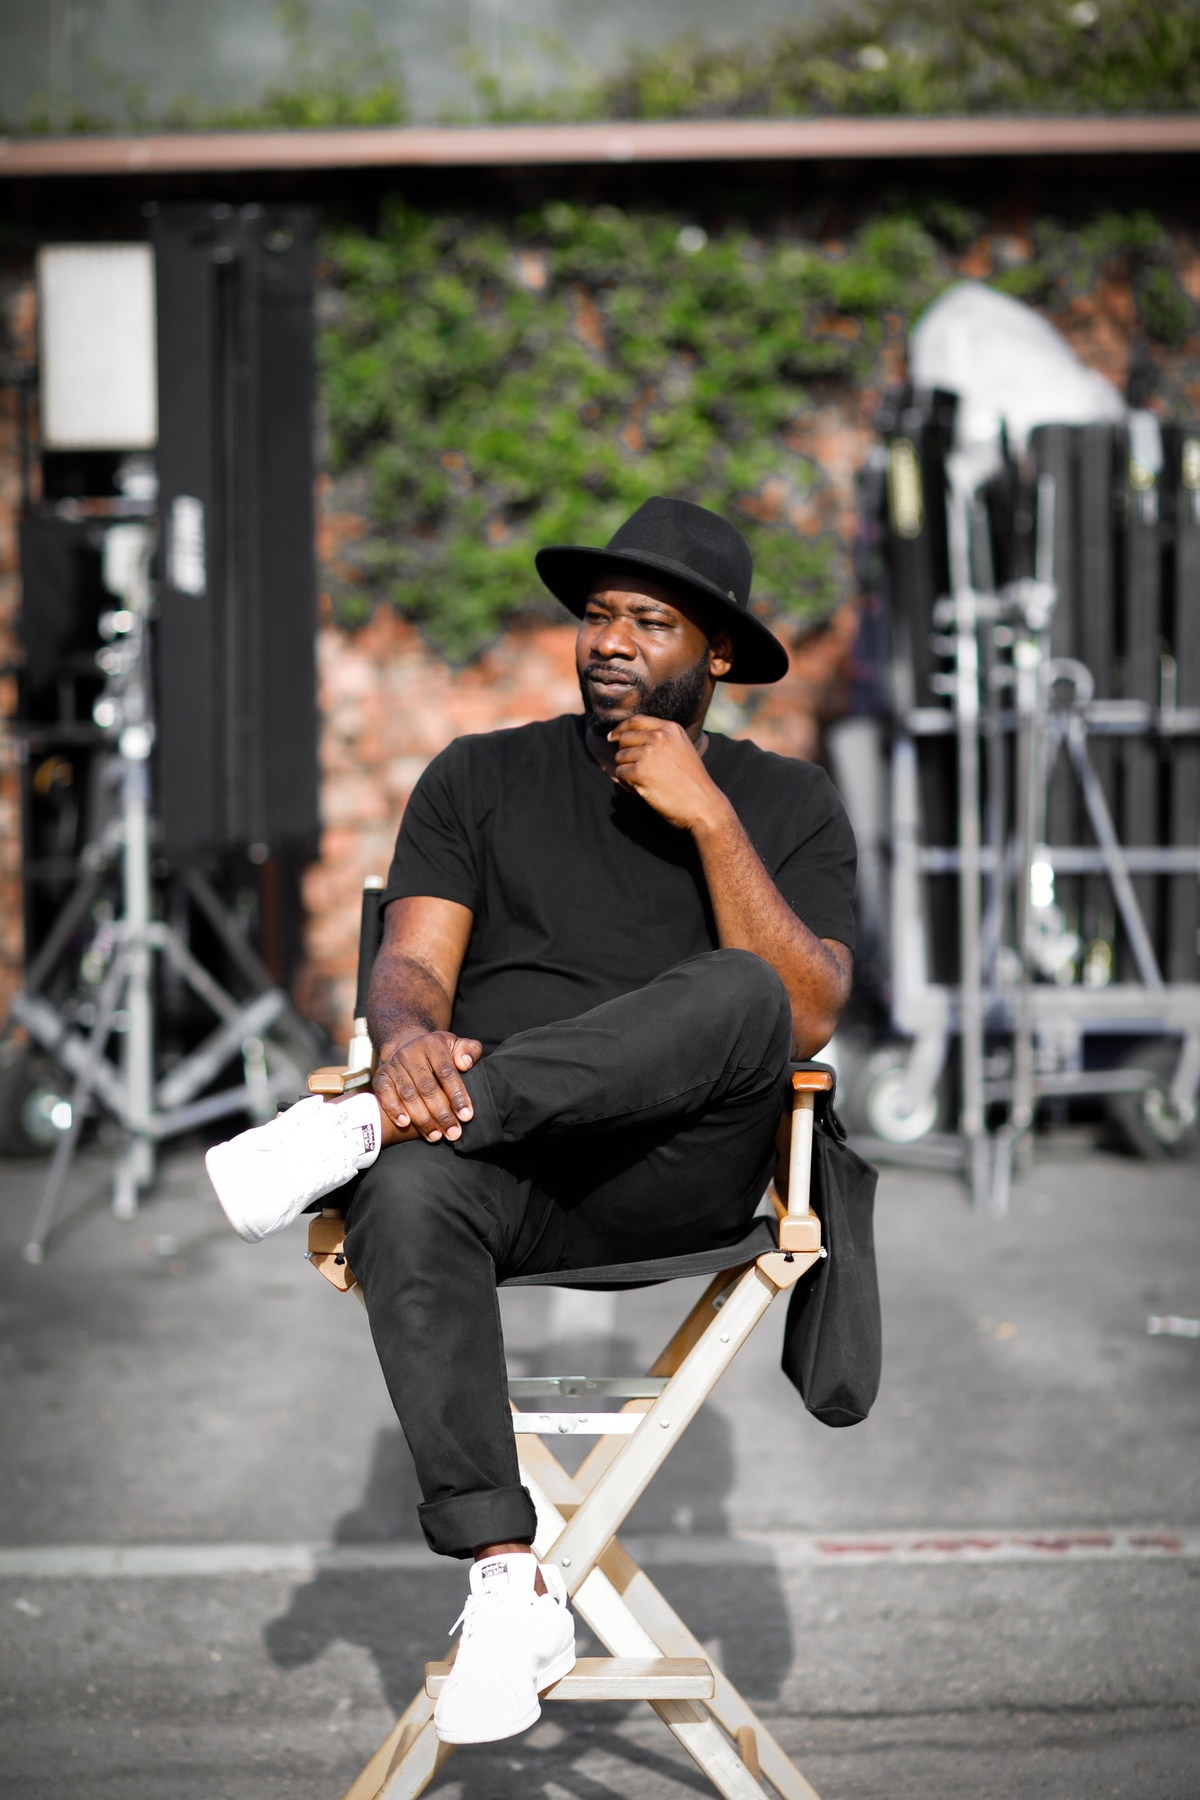 Blitz The Ambassador To Direct A Warner Bros Film 'The Color Purple' Produced By Oprah Winfrey